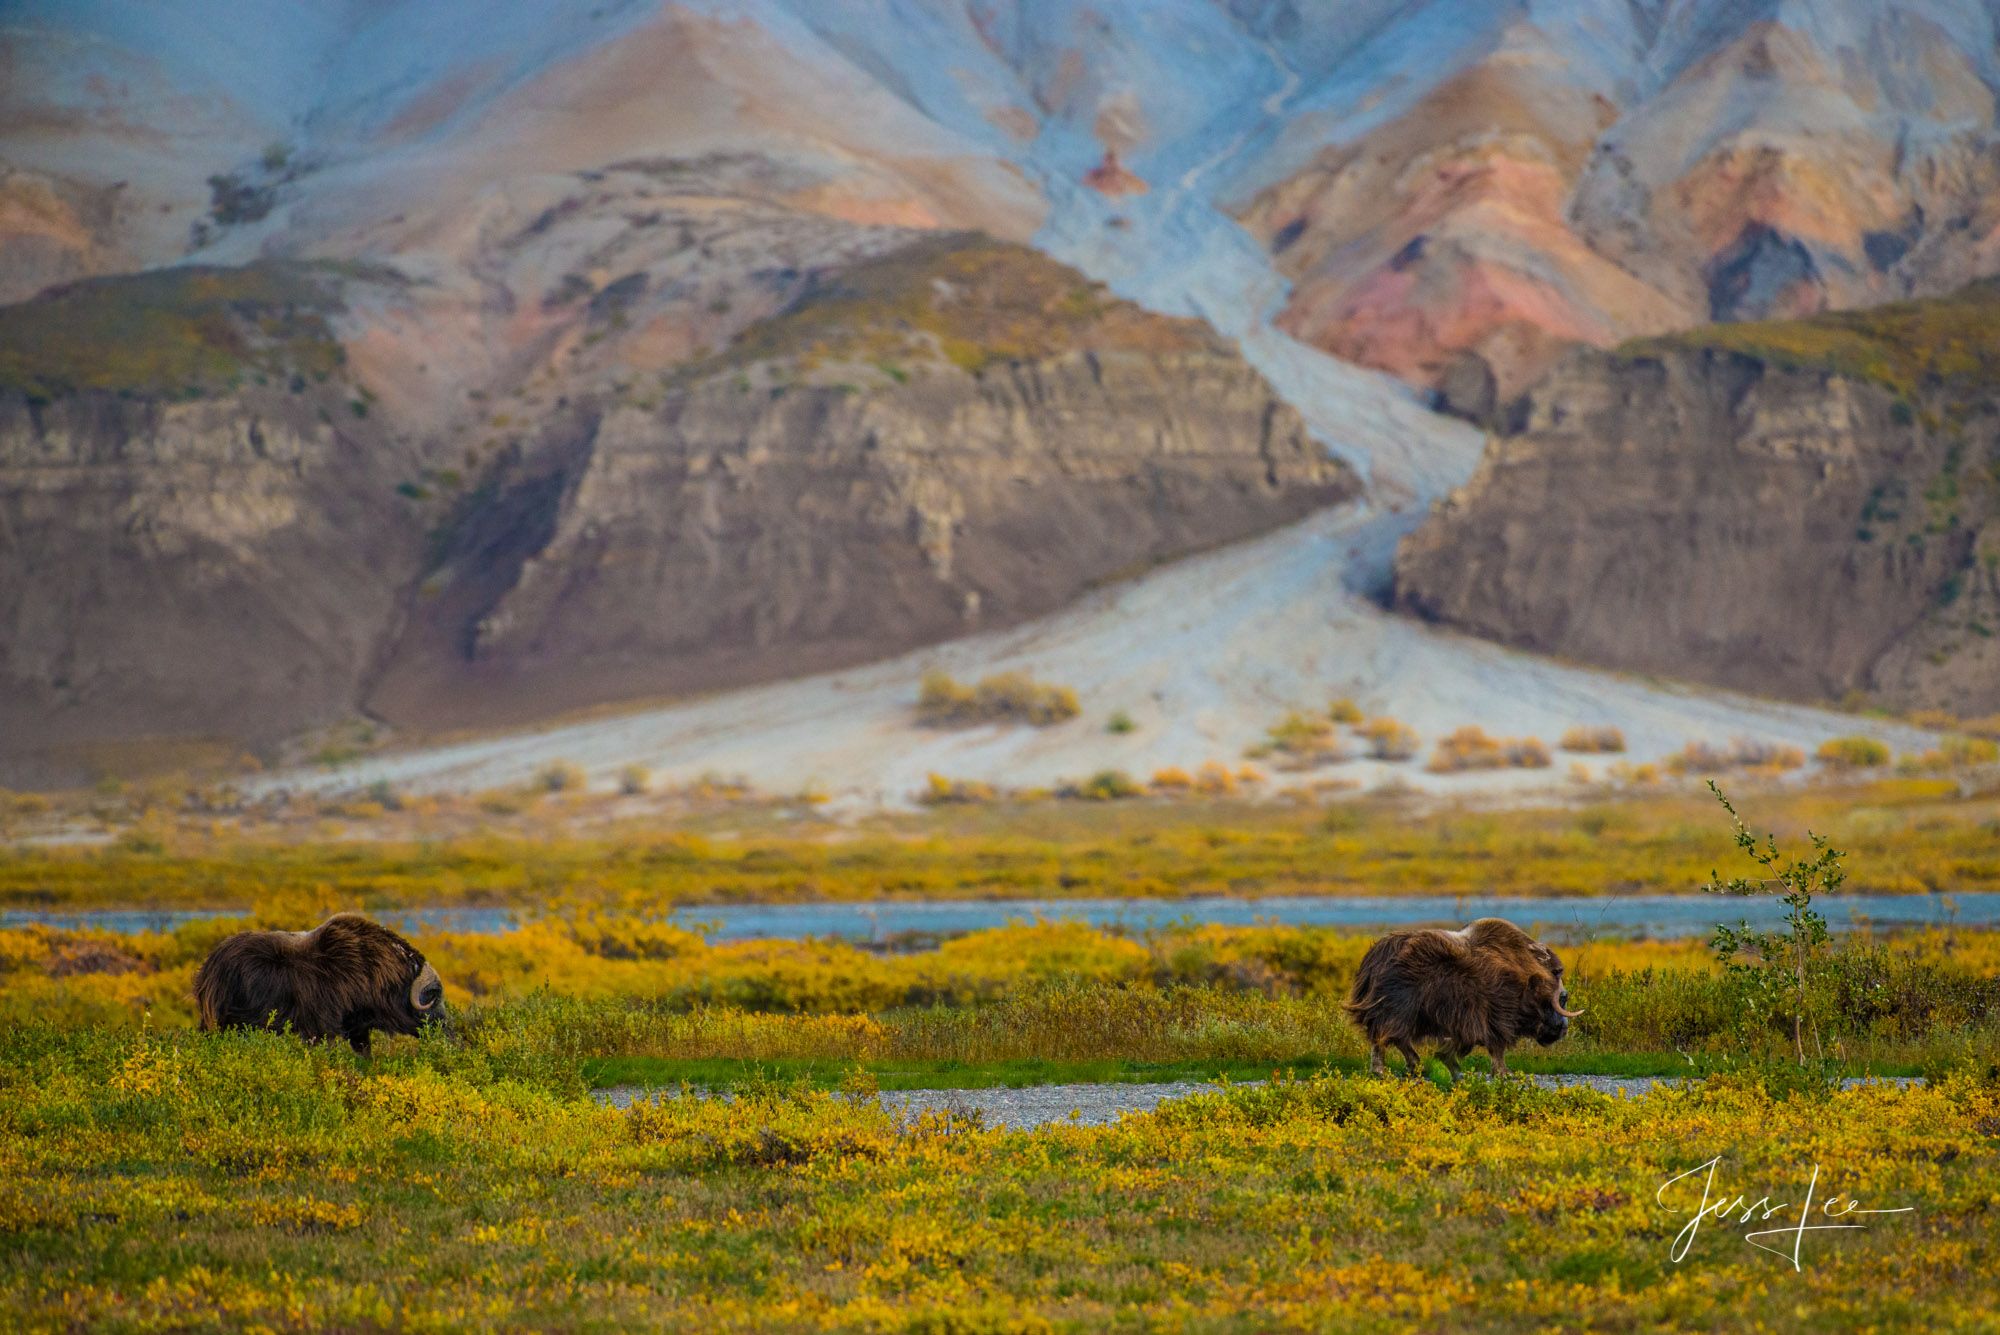 Arctic, aurora, frozen, autumn, tundra, Alaska, Norway, , Global warning, musk ox,, photo